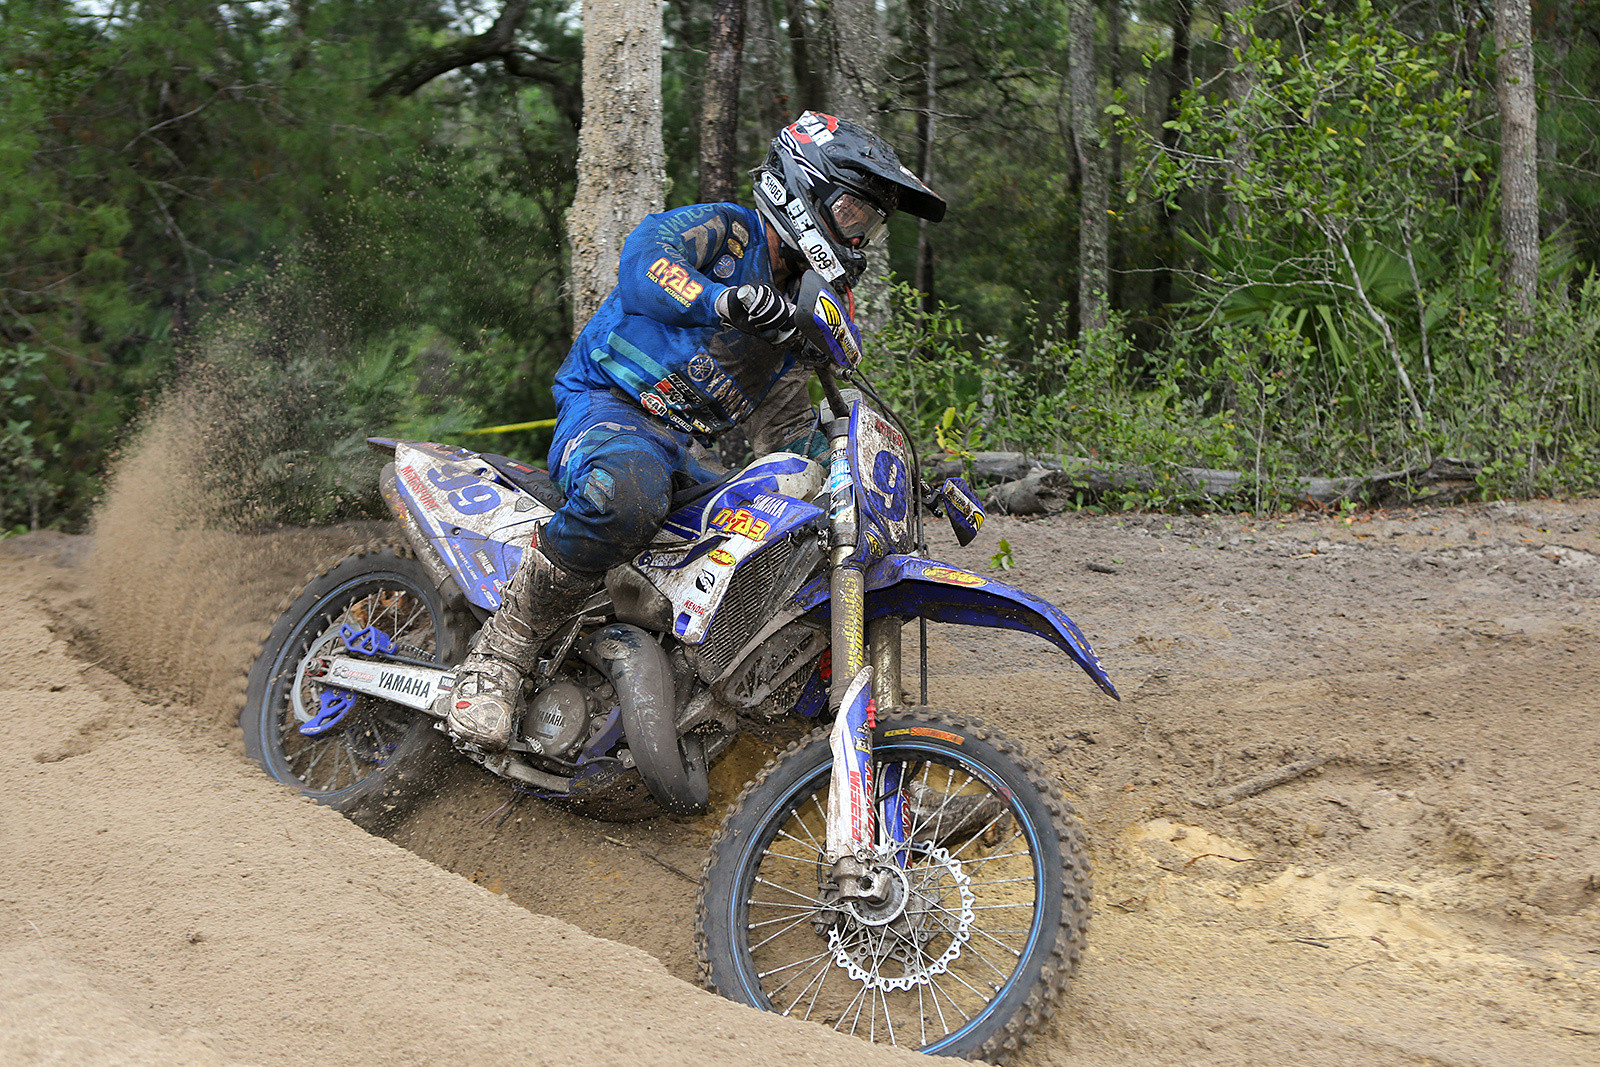 Paul Whibley - Wild Boar GNCC - Motocross Pictures - Vital MX